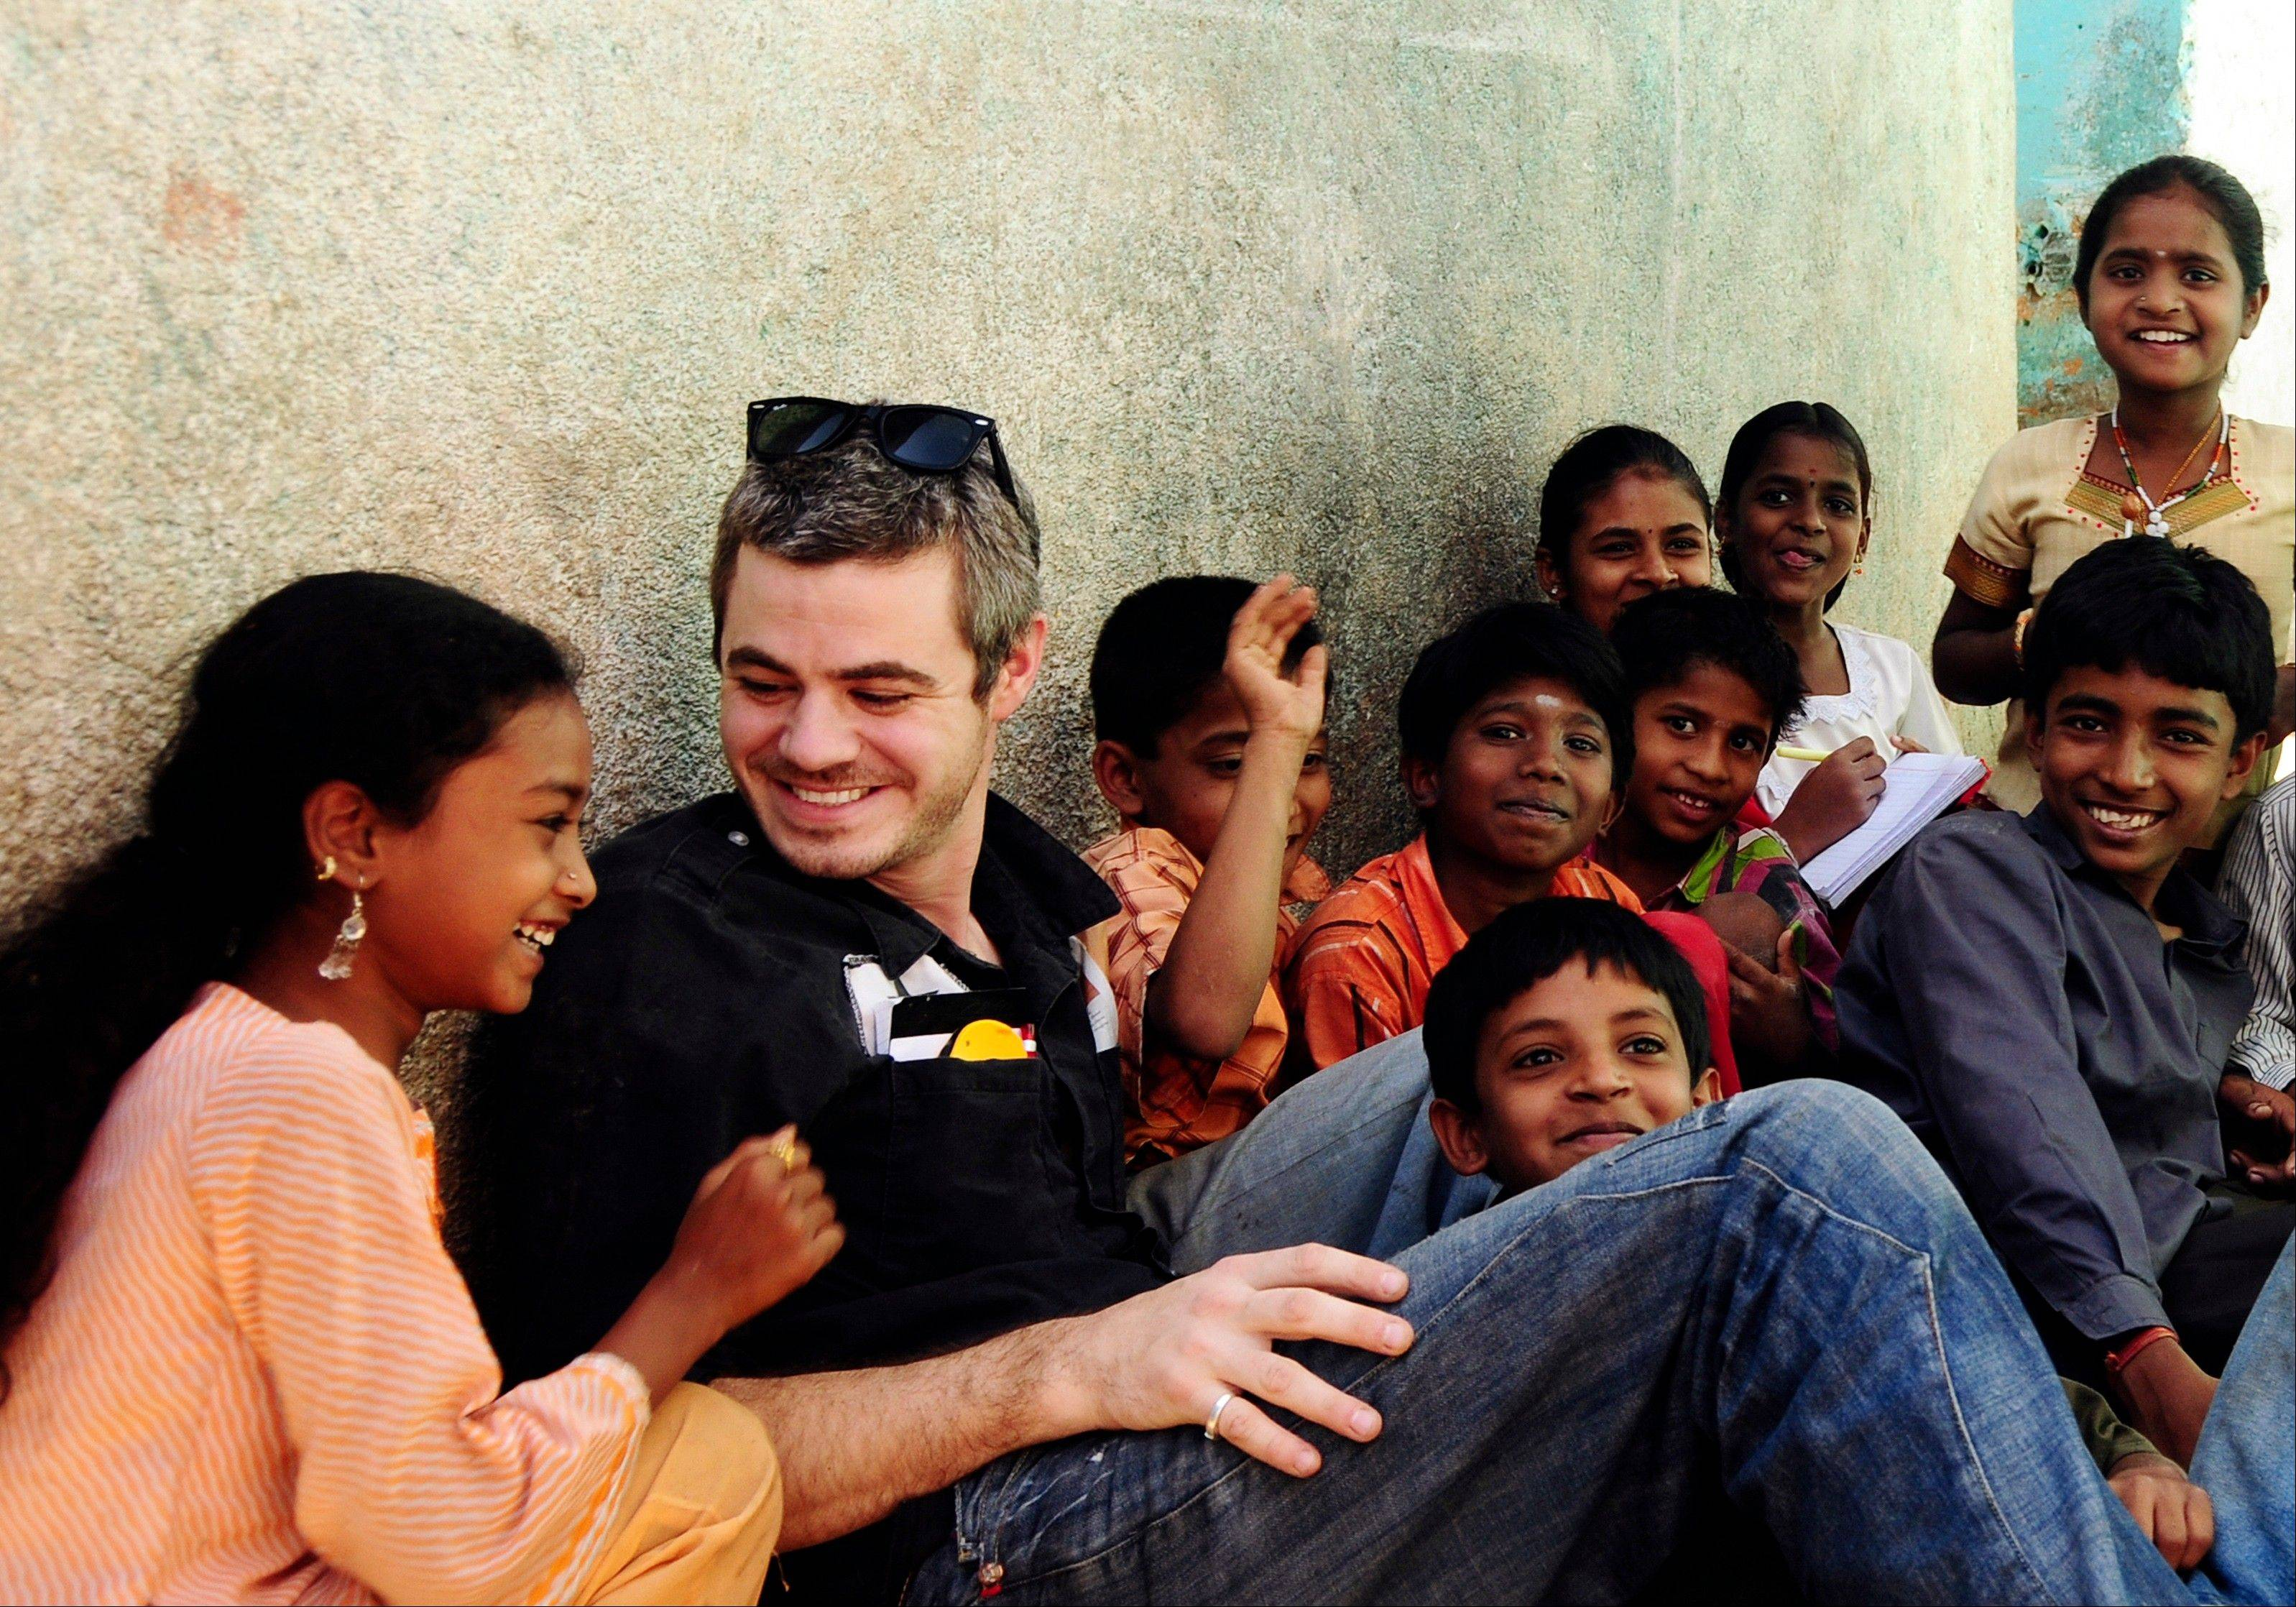 Scott Harrison talks with school children as he visits a school water project in India. His organization has funded nearly 7,000 clean water projects in some of the poorest areas of the world.